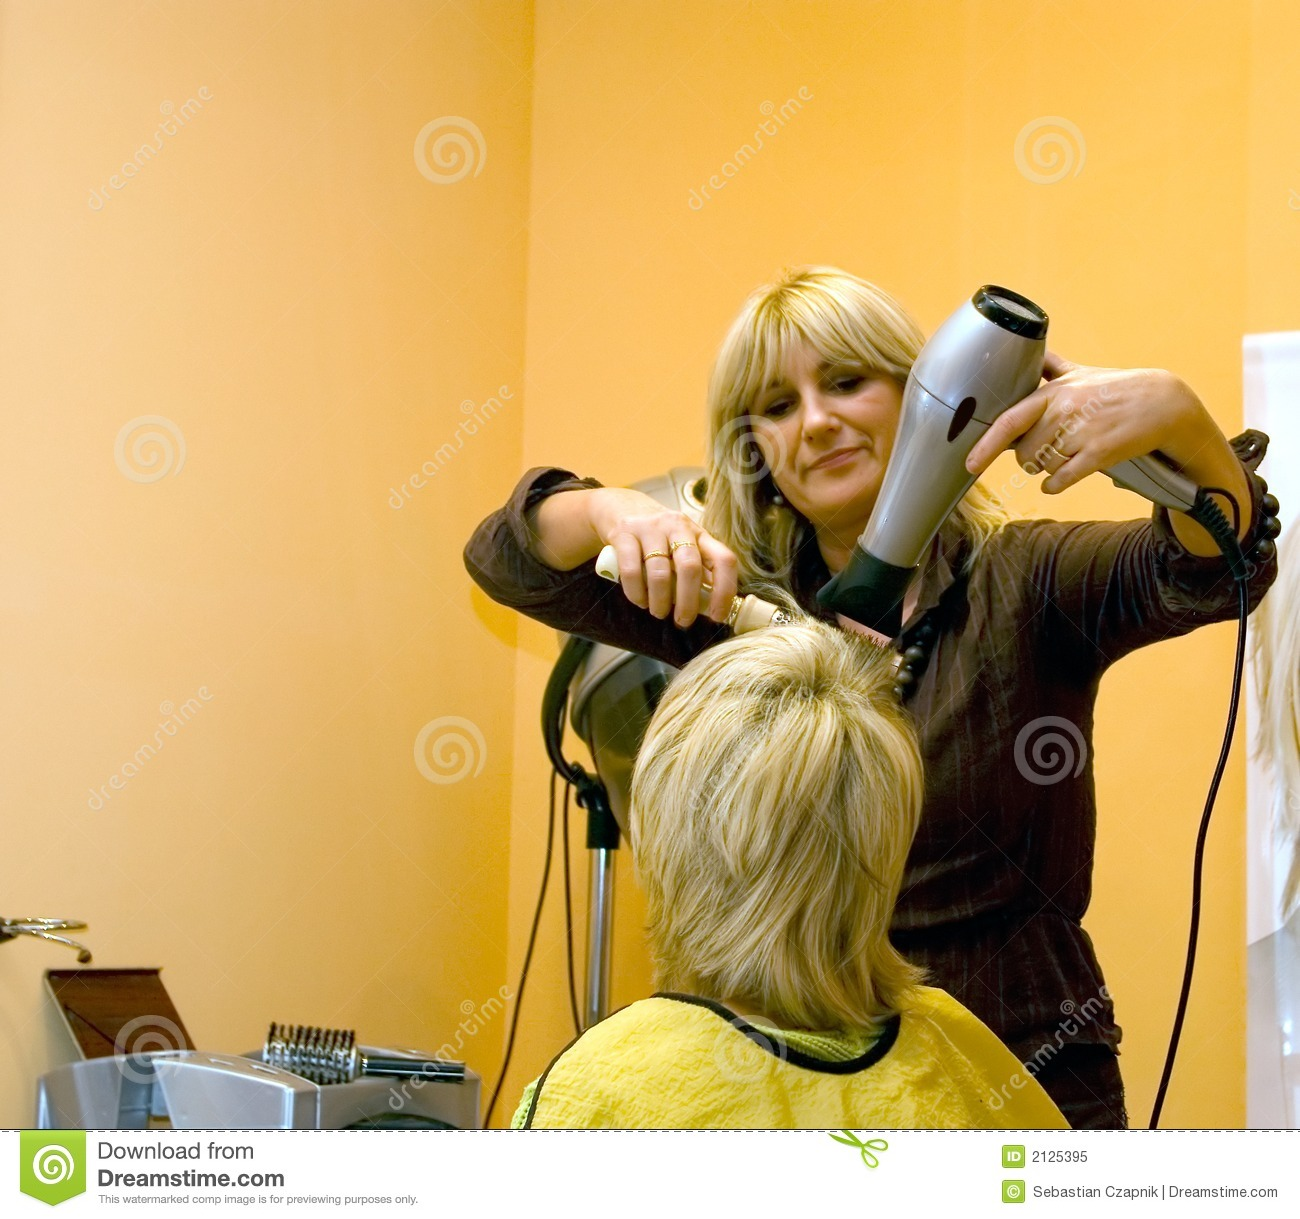 At the hairdresser